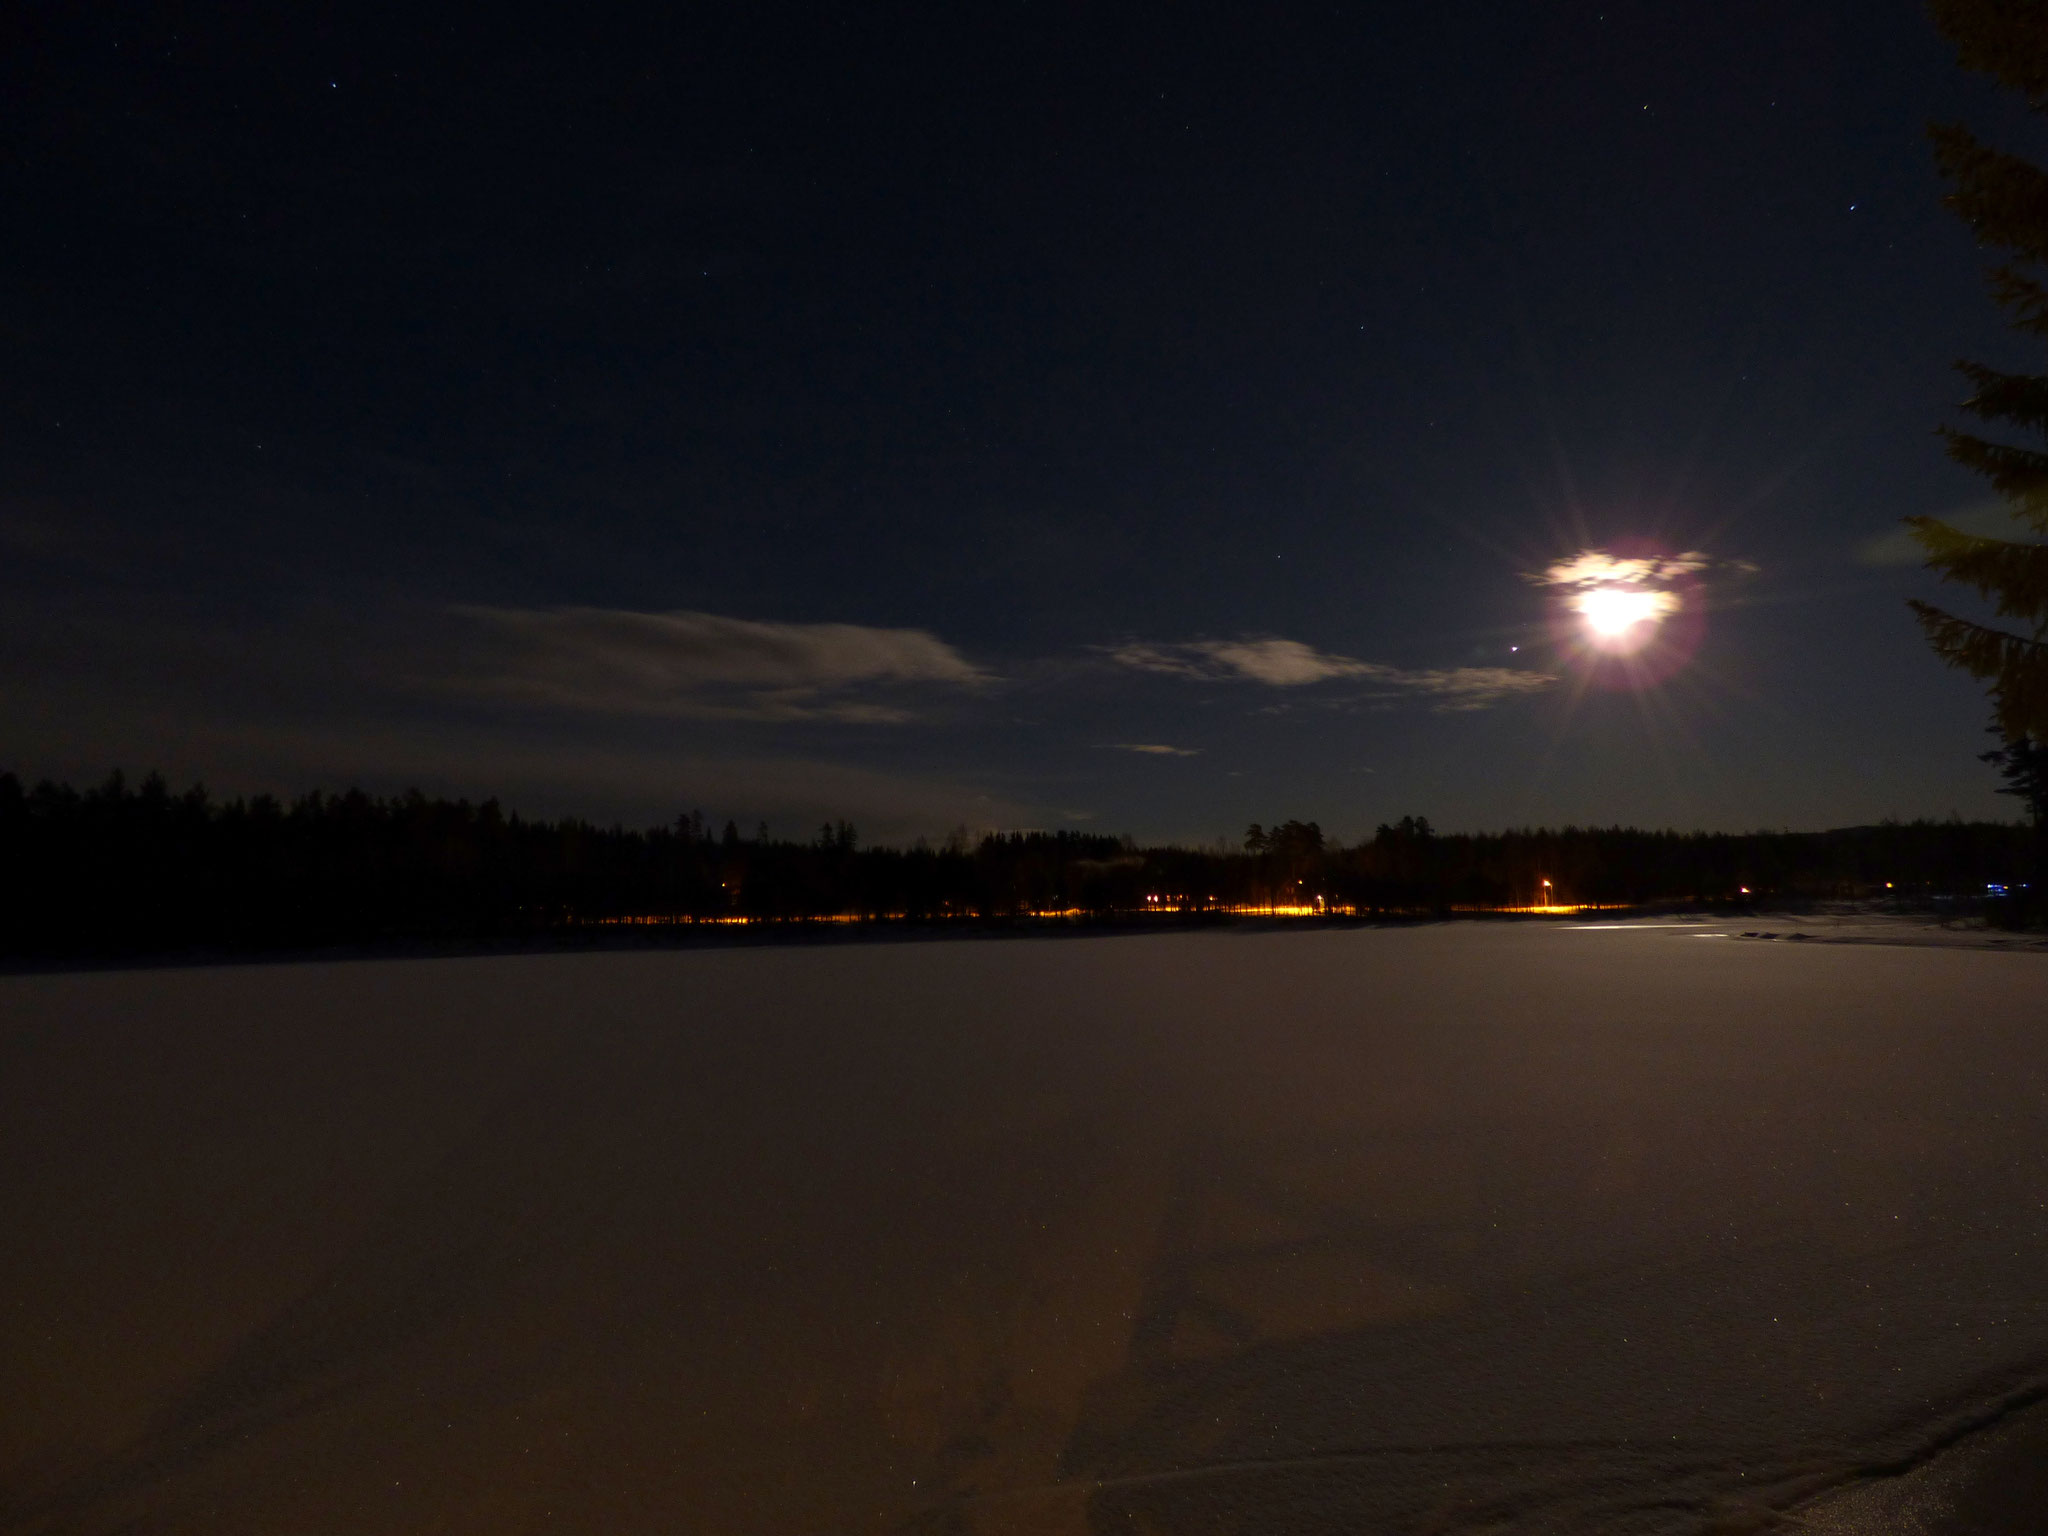 fullmoon over the frozen lake